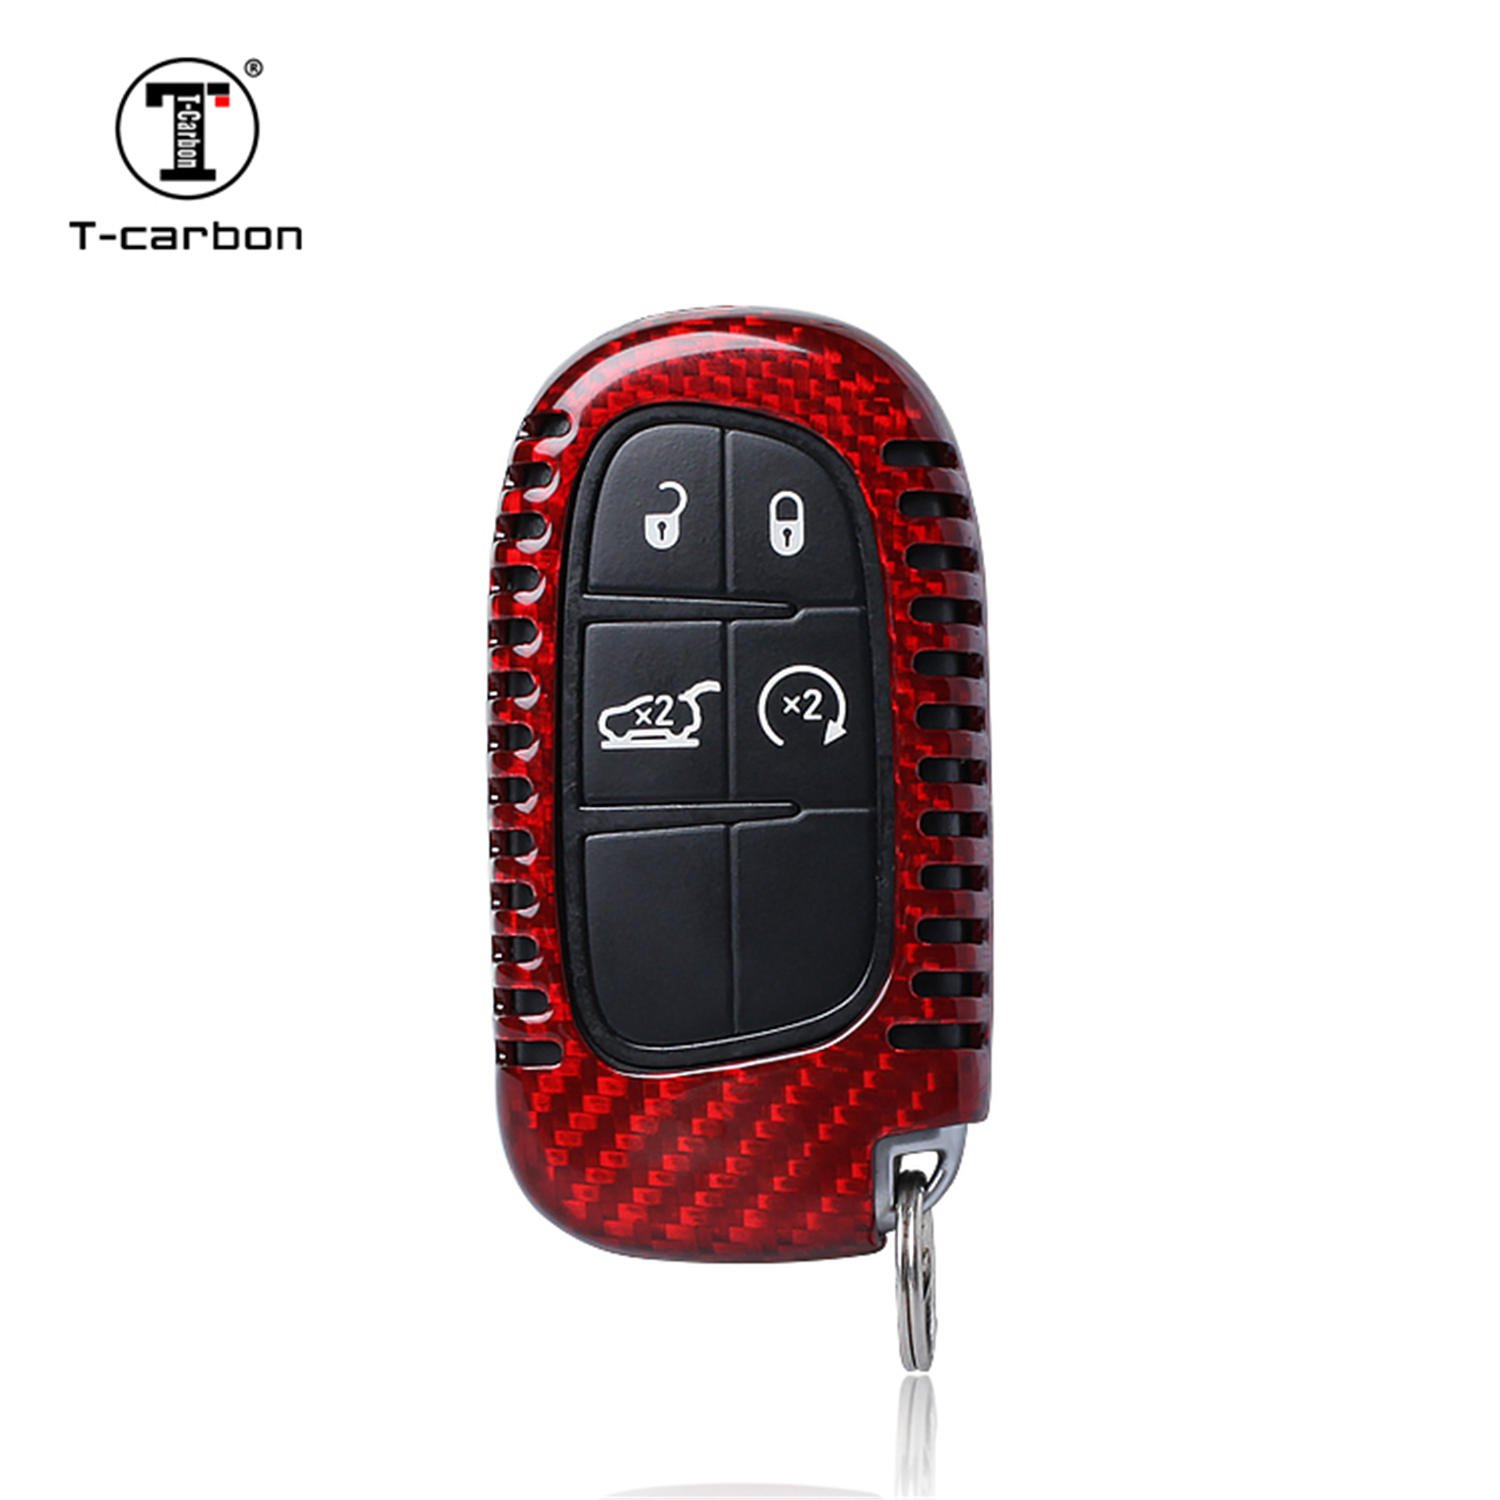 MissBlue Carbon Fiber Key Fob Cover for Jeep Cherokee Key Fob Remote Key, Fits Jeep Cherokee Smart Keyless Start Stop Engine Car Key, Light Weight Glossy Finish Key Fob Protection Case - Red